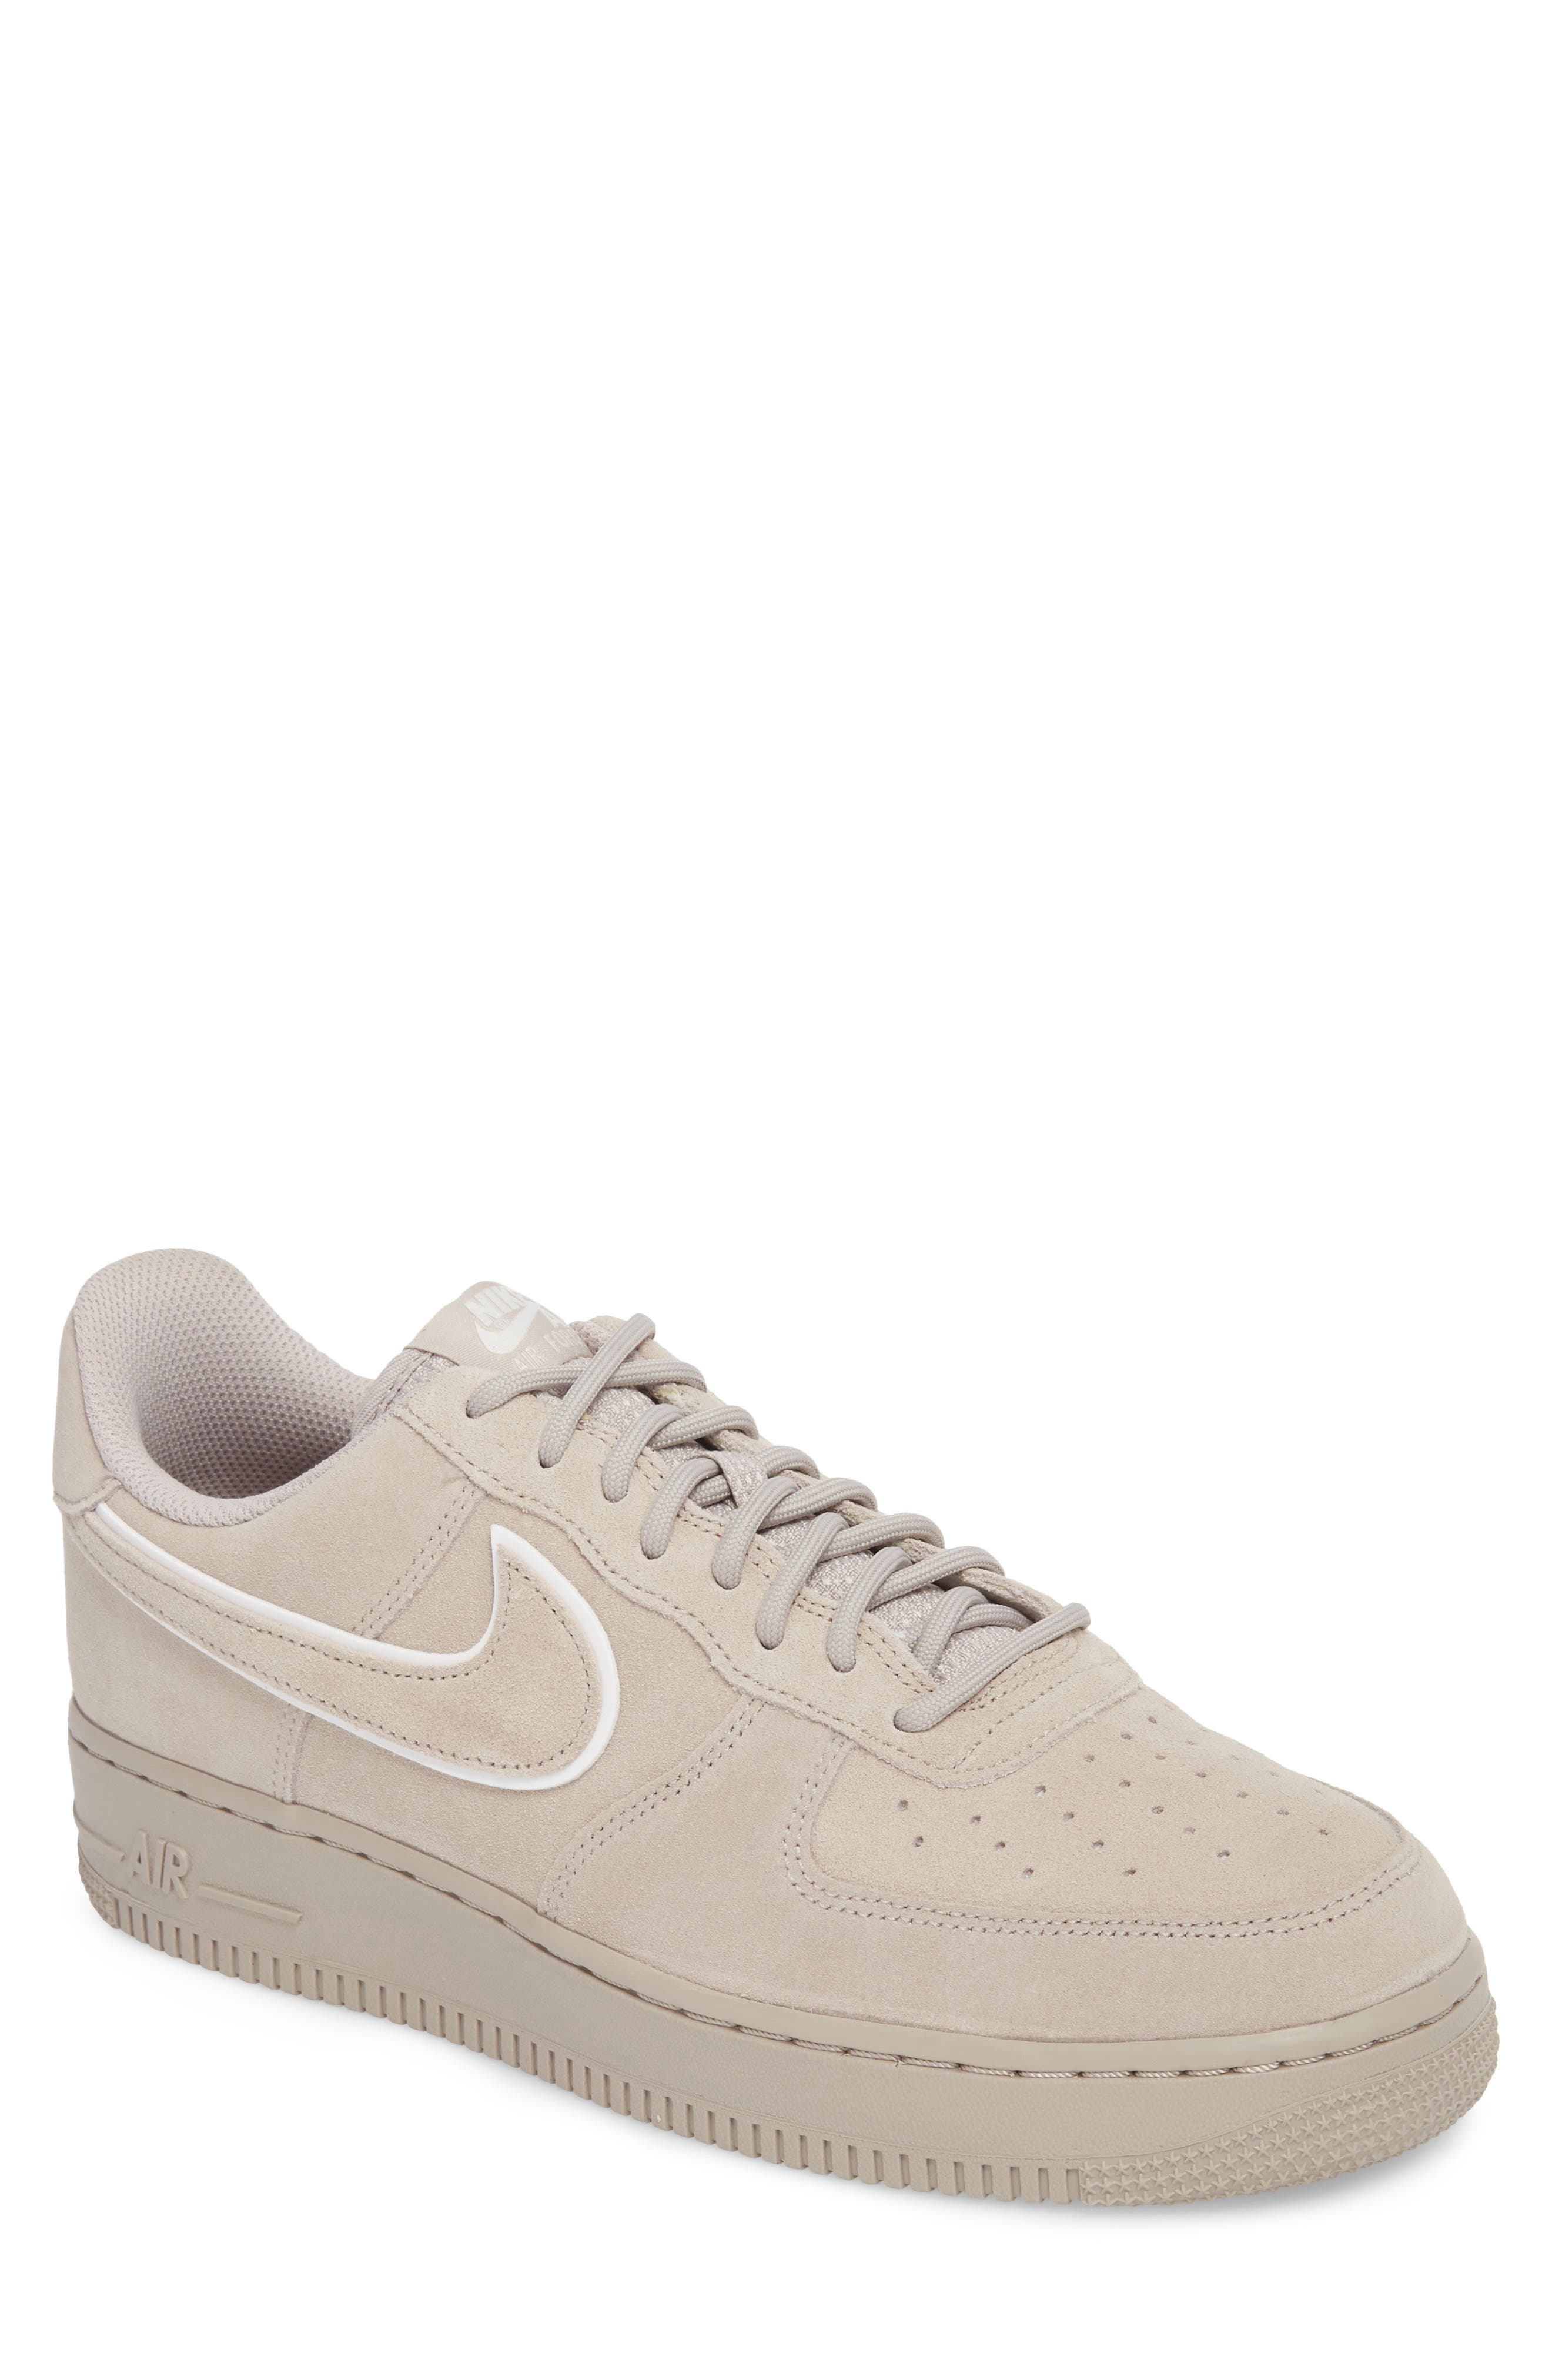 Air Force 1 '07 Low LV8 Sneaker,                             Main thumbnail 1, color,                             Moon Particle/ Sepia Stone